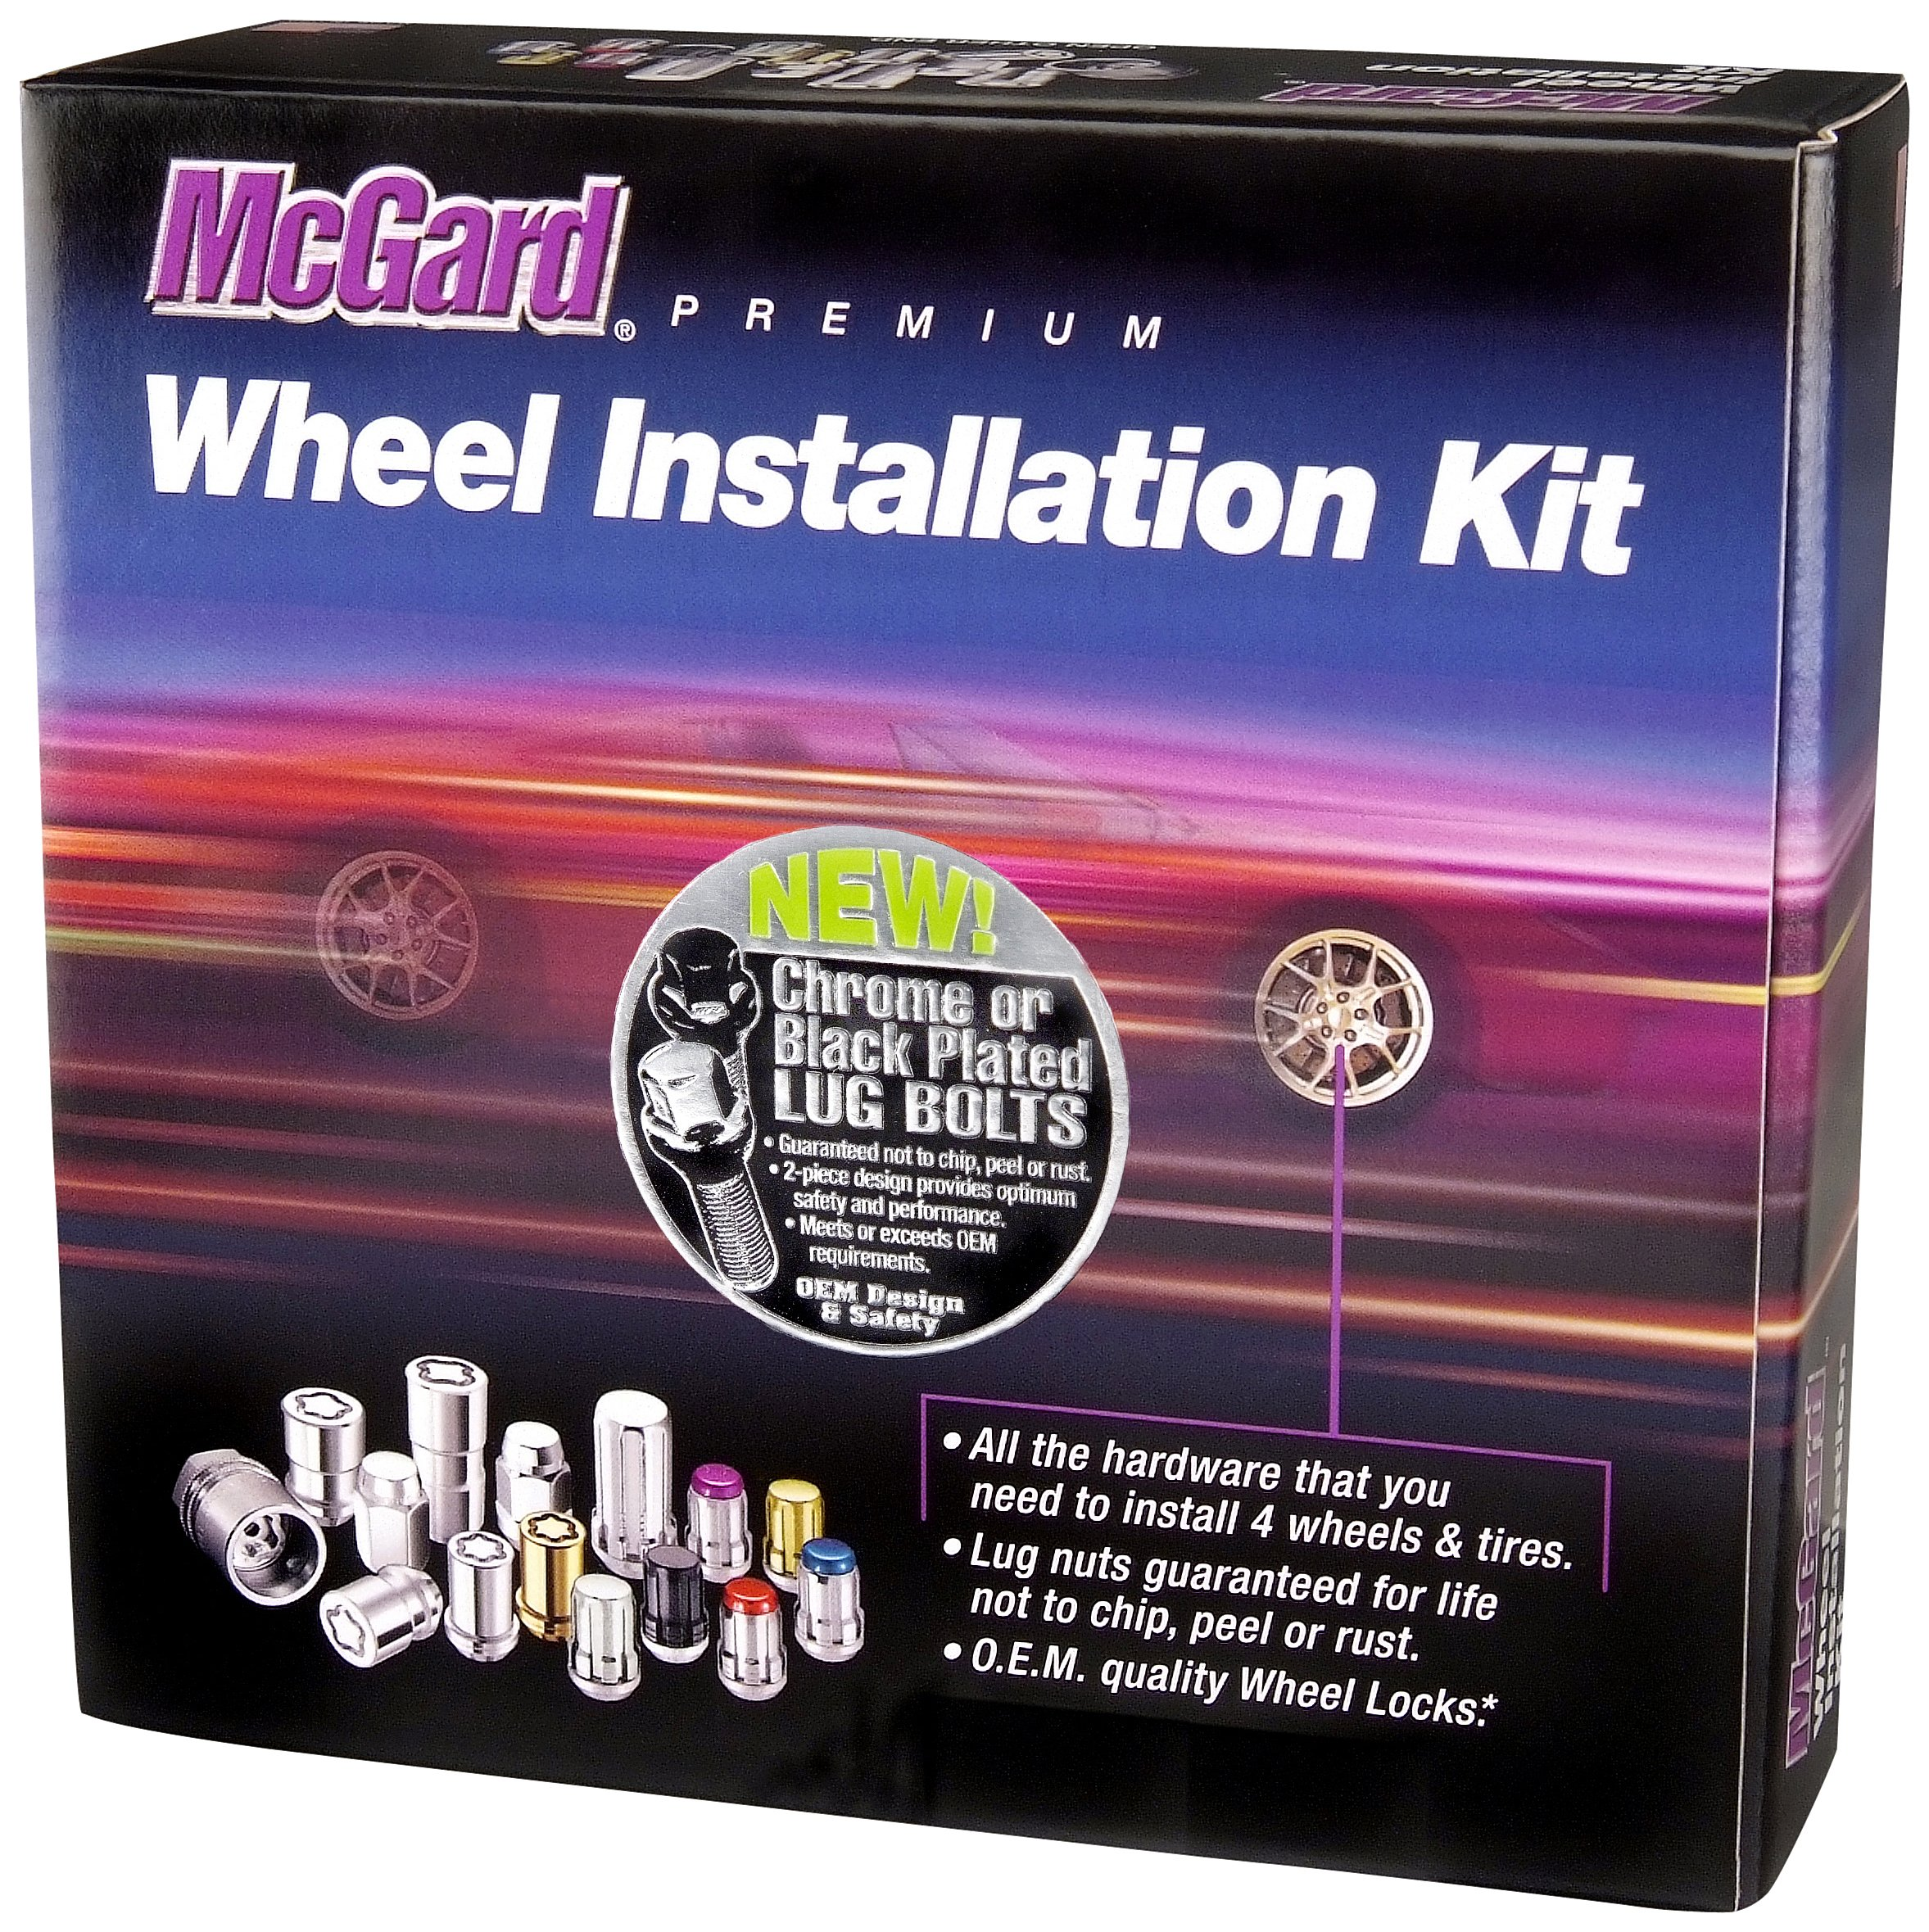 McGard 67200 Chrome M14 x 1.5 Thread Size Cone Seat Lug Bolt Wheel Installation Kit for 5 Lug Vehicles